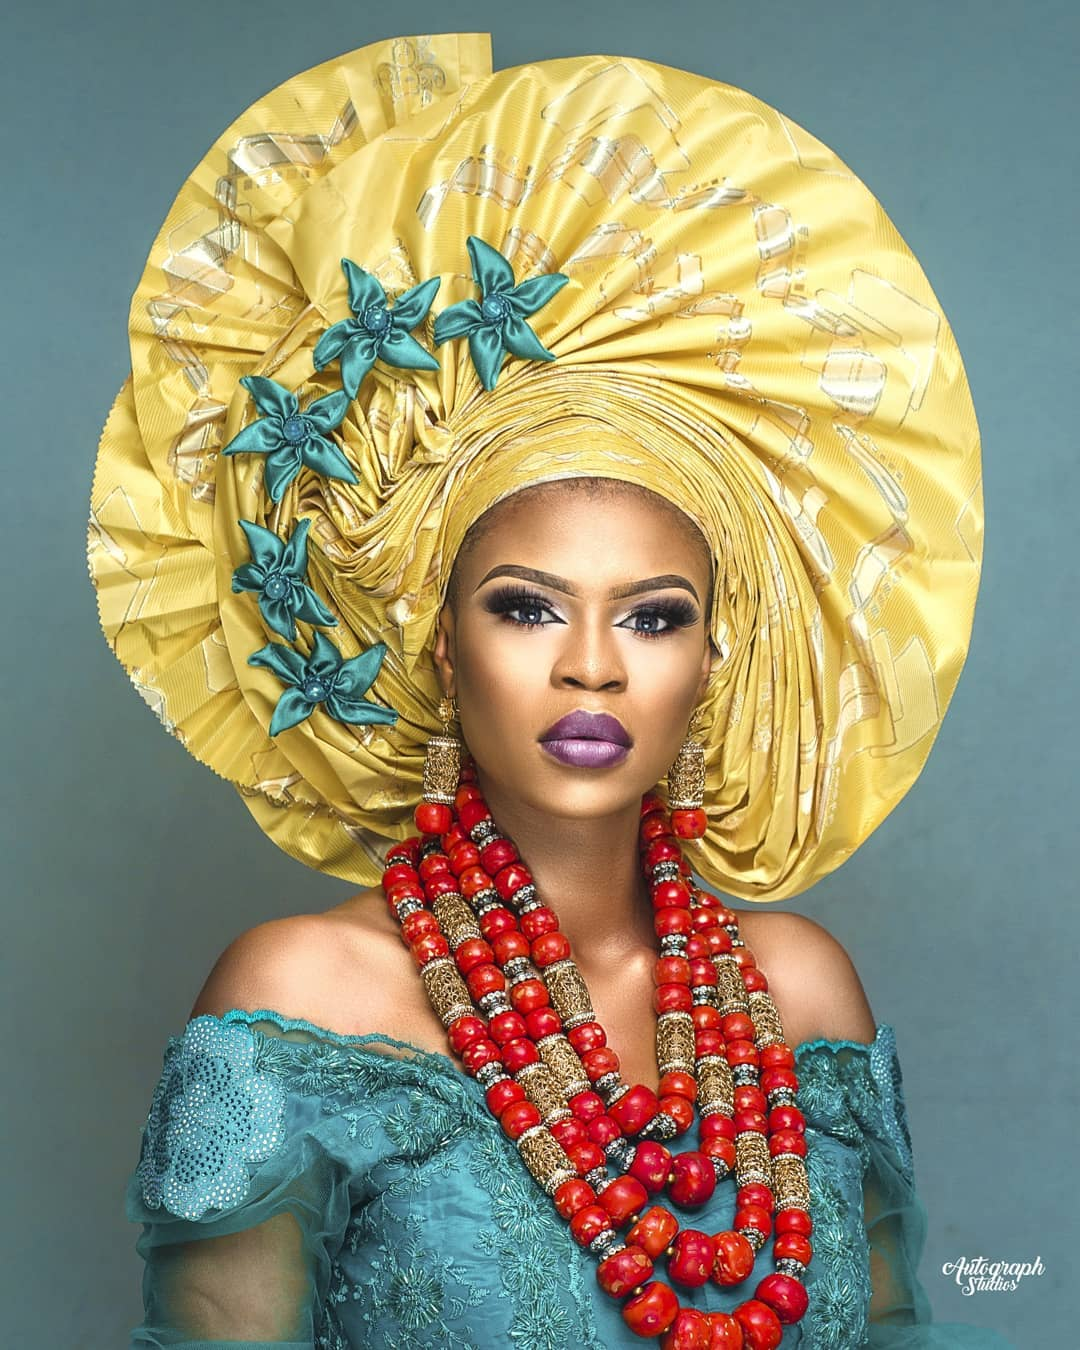 Super Amazing Gele Styles That Makes You Steal The Show At Any Event